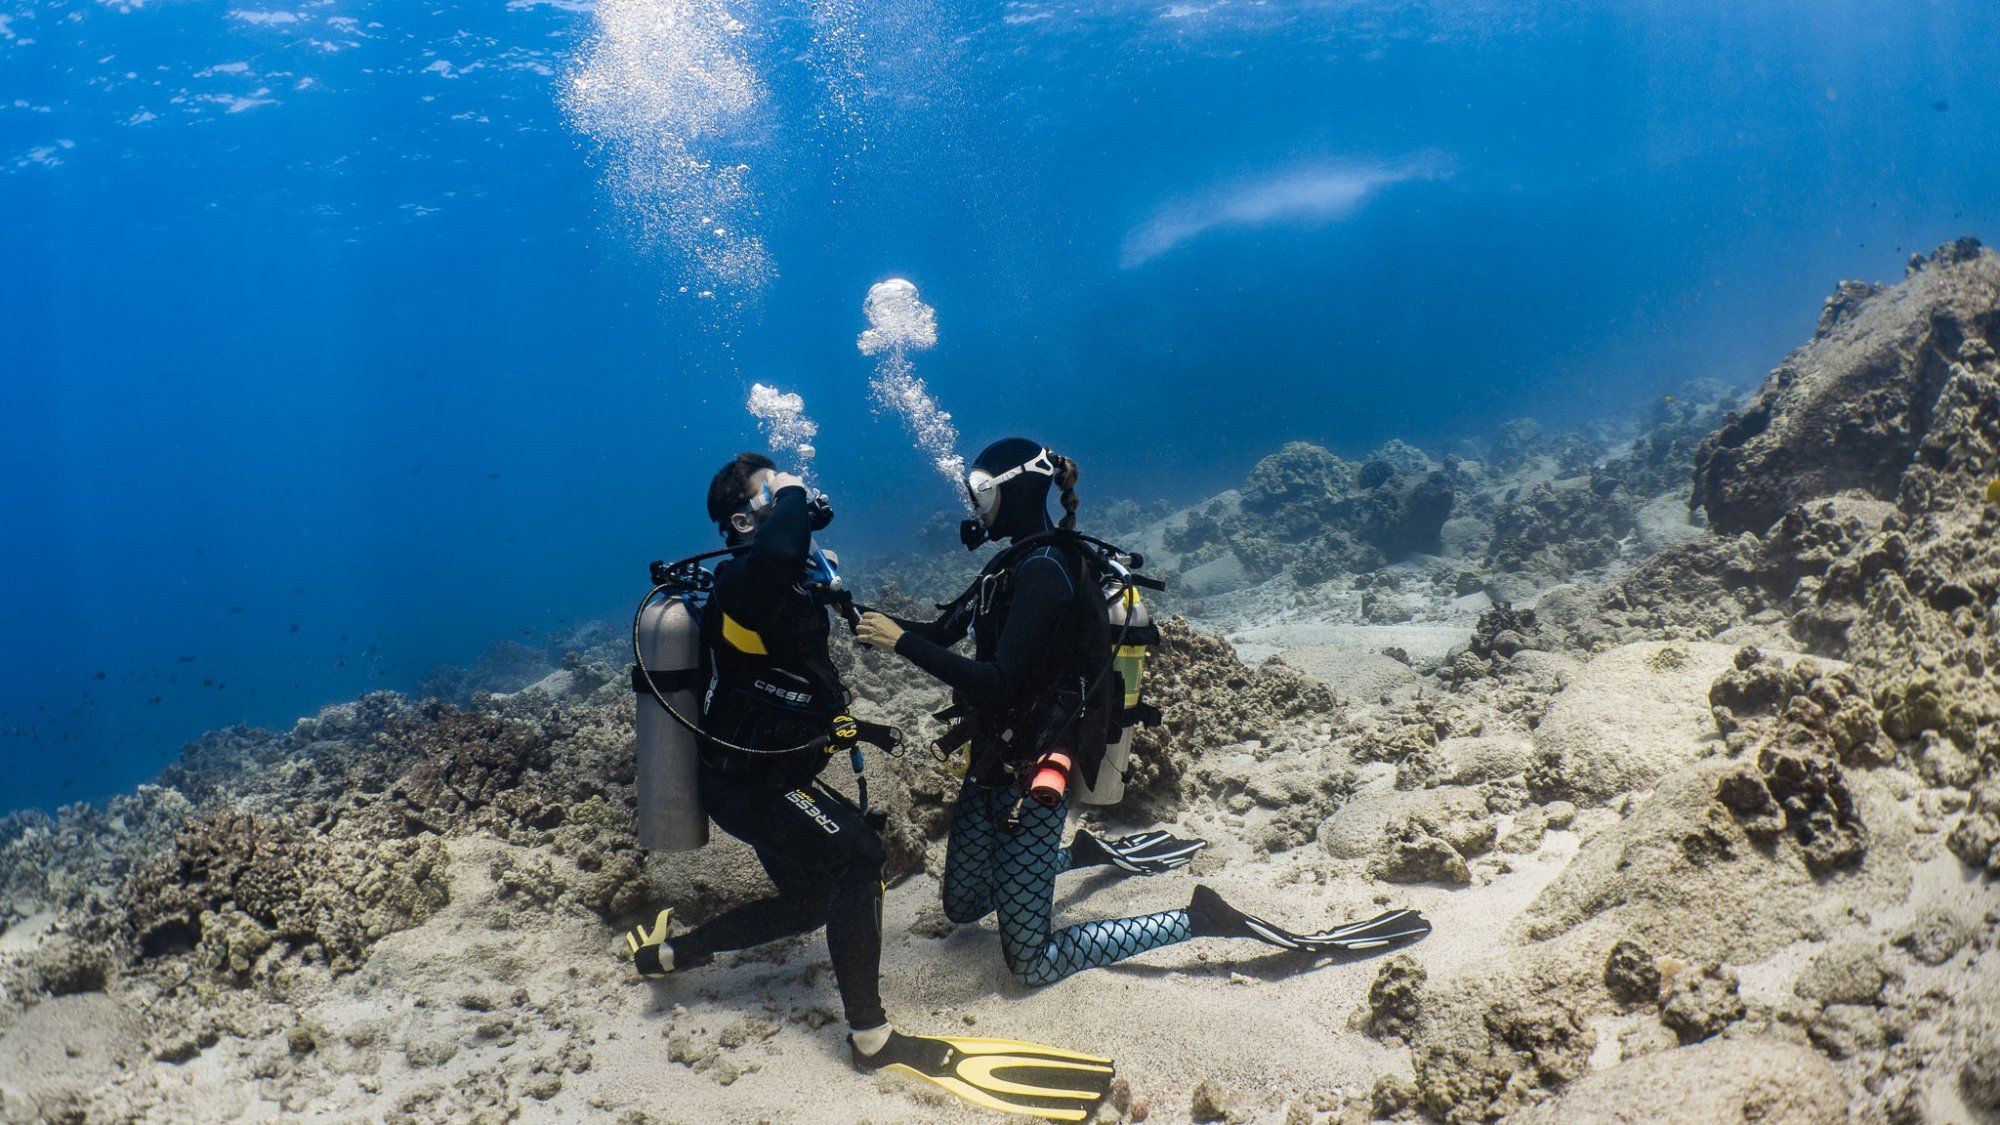 open water referral student learning to scuba dive in Kona, Hawaii